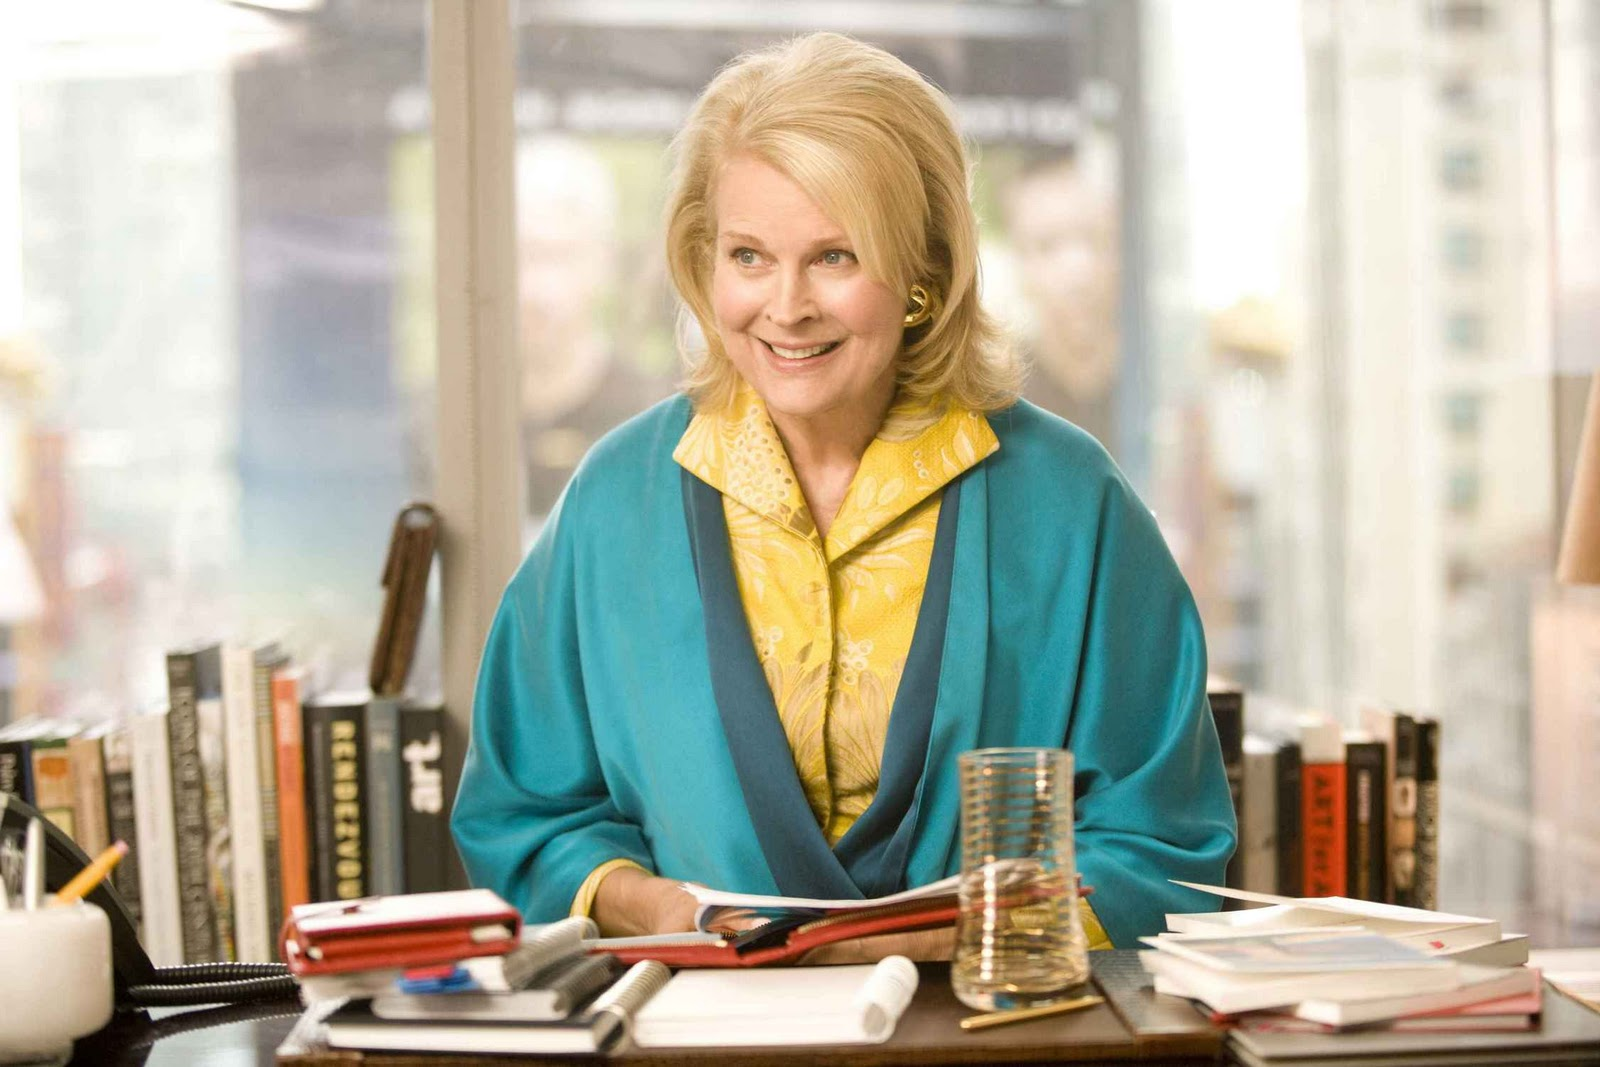 Sex in the city candace bergen